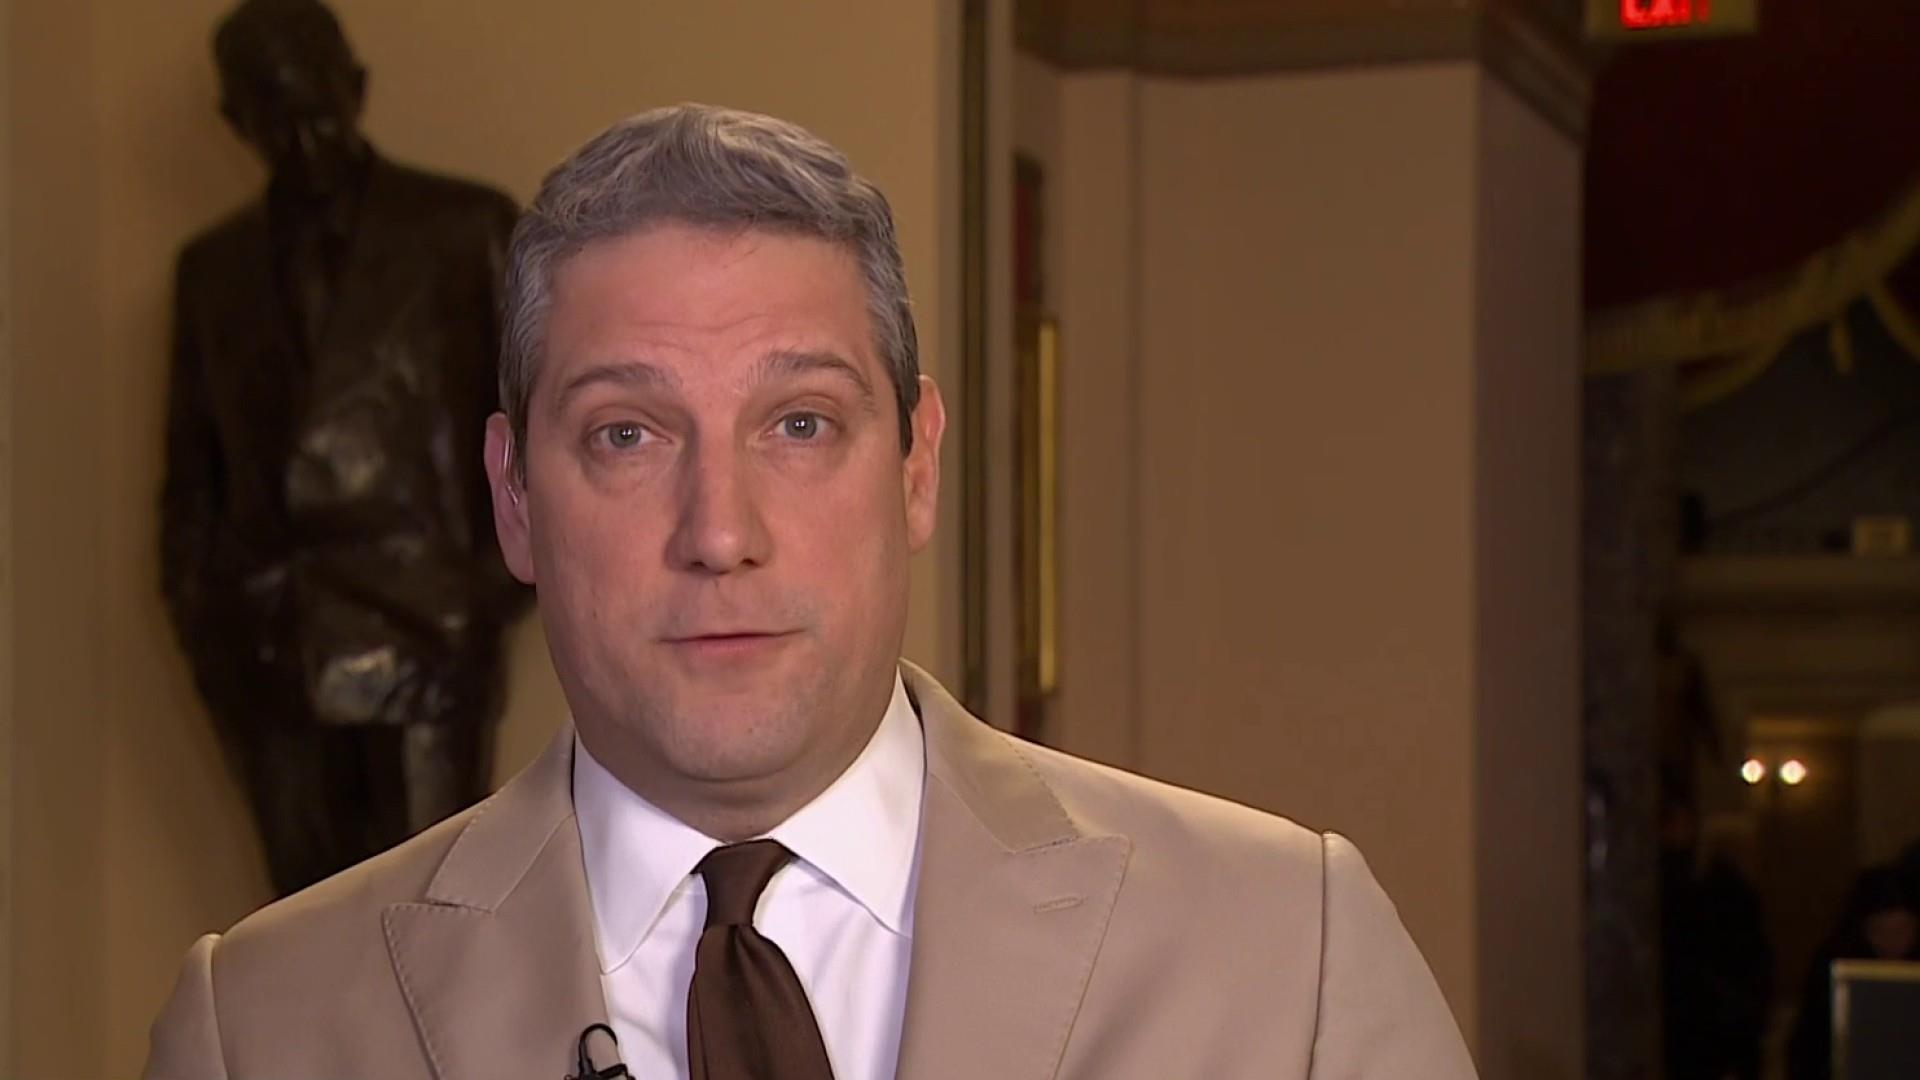 Tim Ryan on the National Emergency: Trump, GOP 'all over the place'